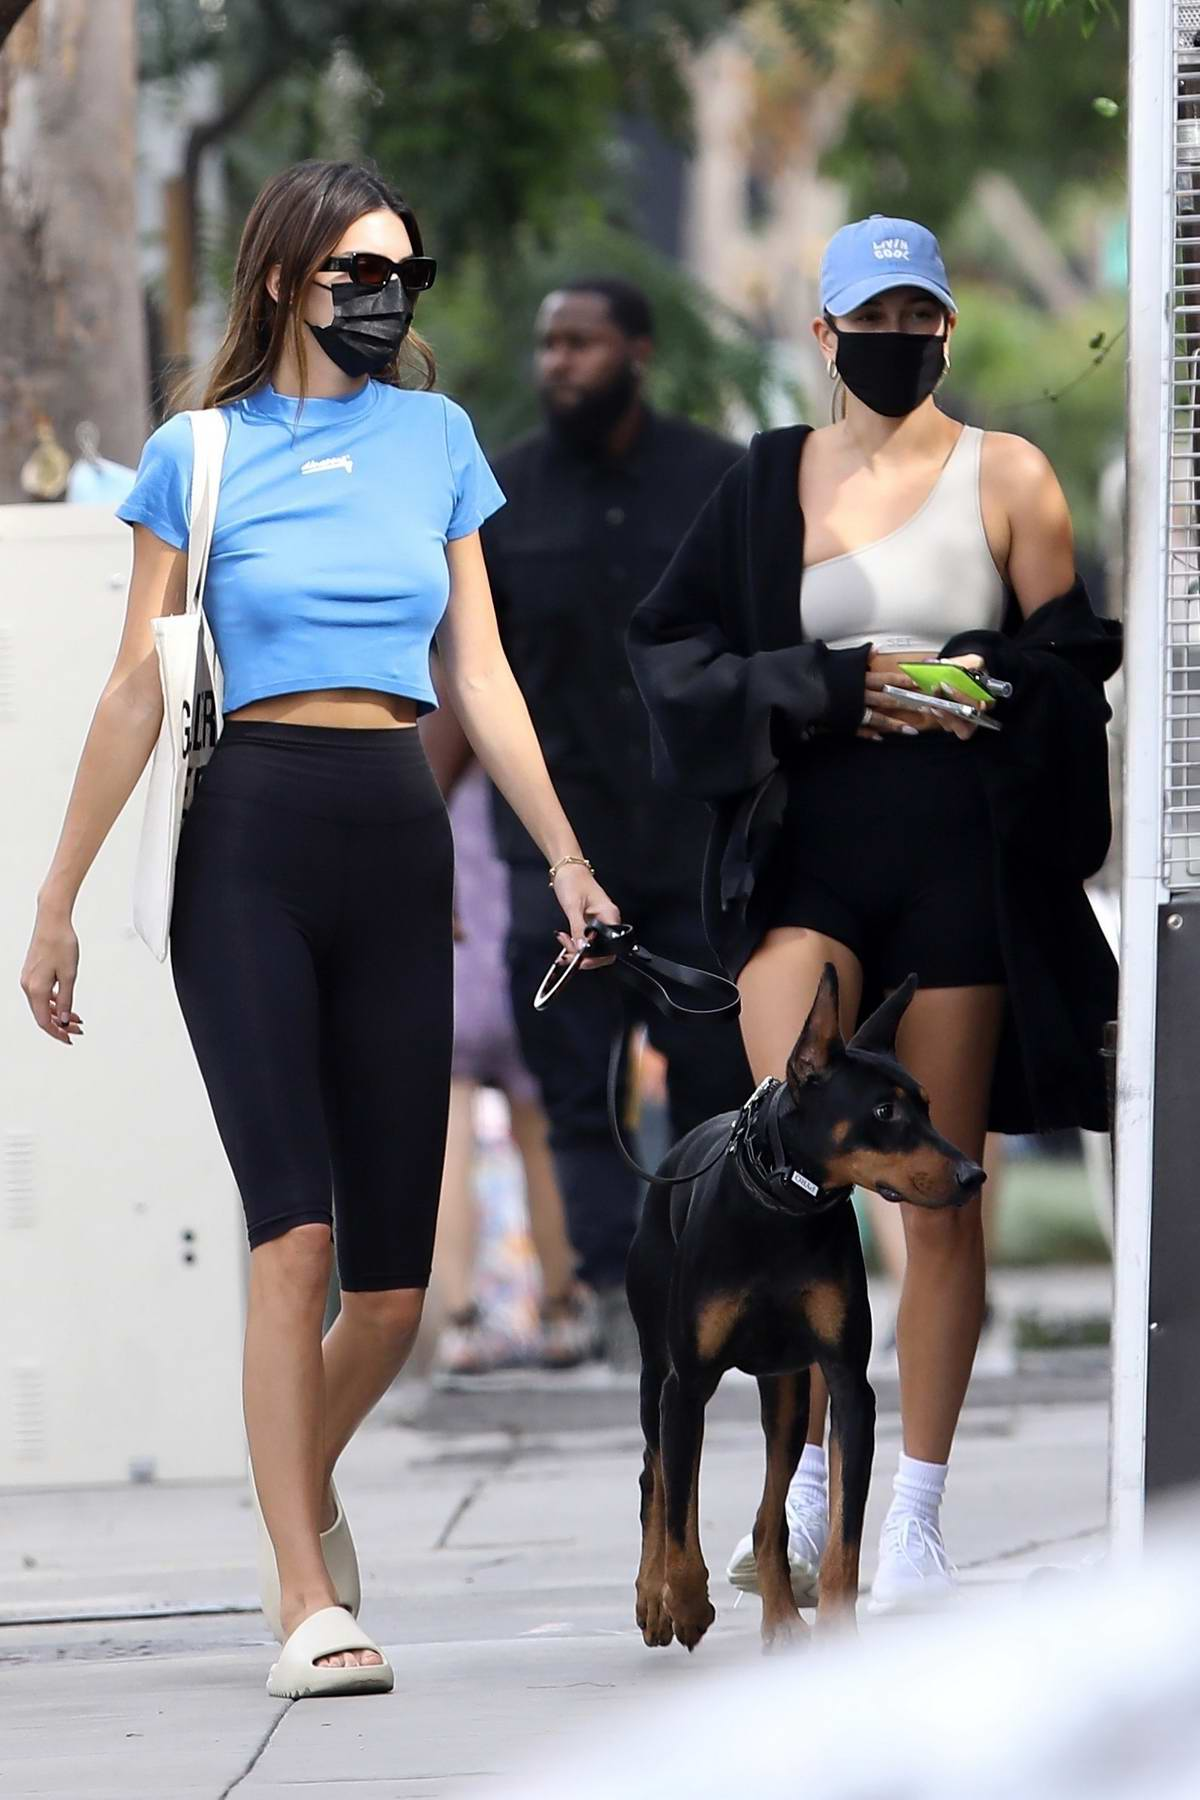 Kendall Jenner and Hailey Bieber get together to grab lunch at Zinque Cafe in West Hollywood, California